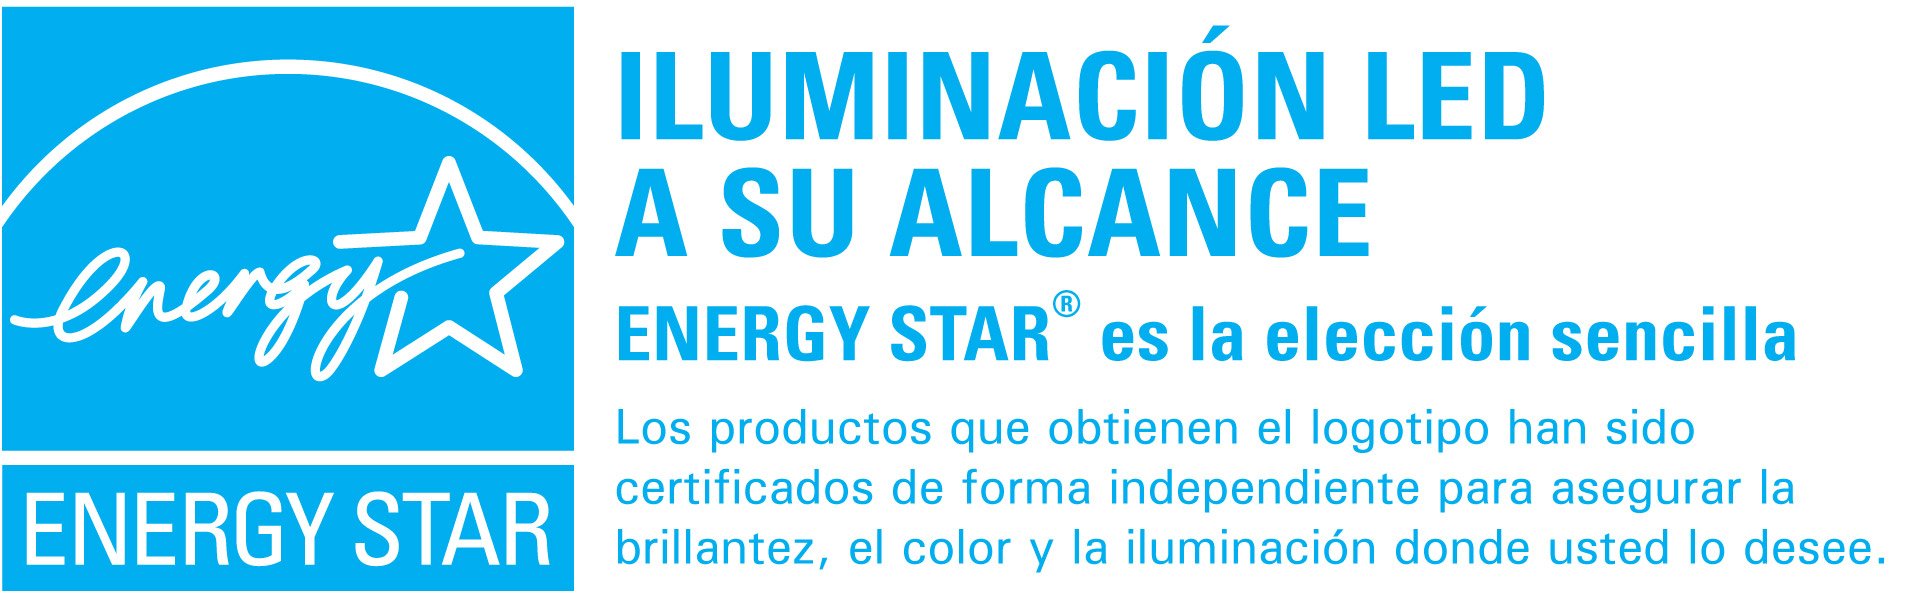 Resources for Lighting Partners | ENERGY STAR